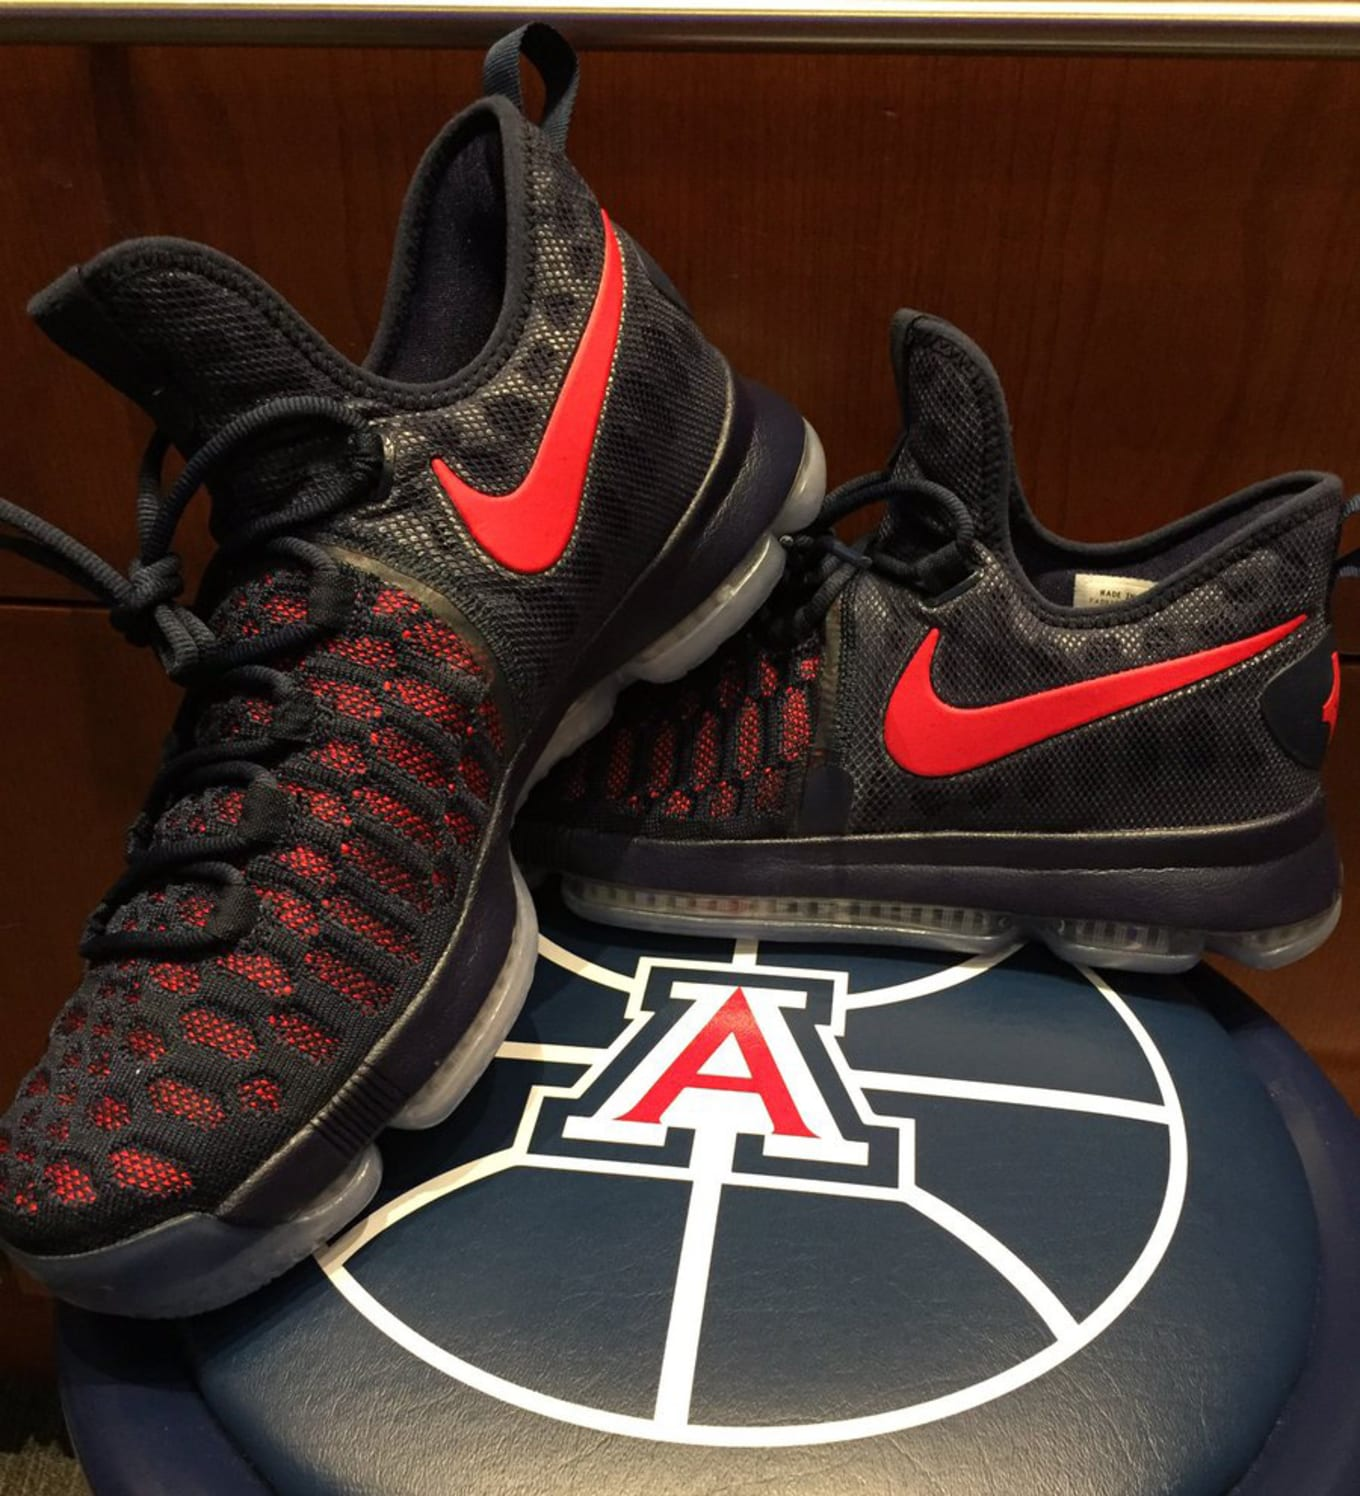 0d412c0b6f455 Player exclusive Nike KD 9s for the Wildcats.